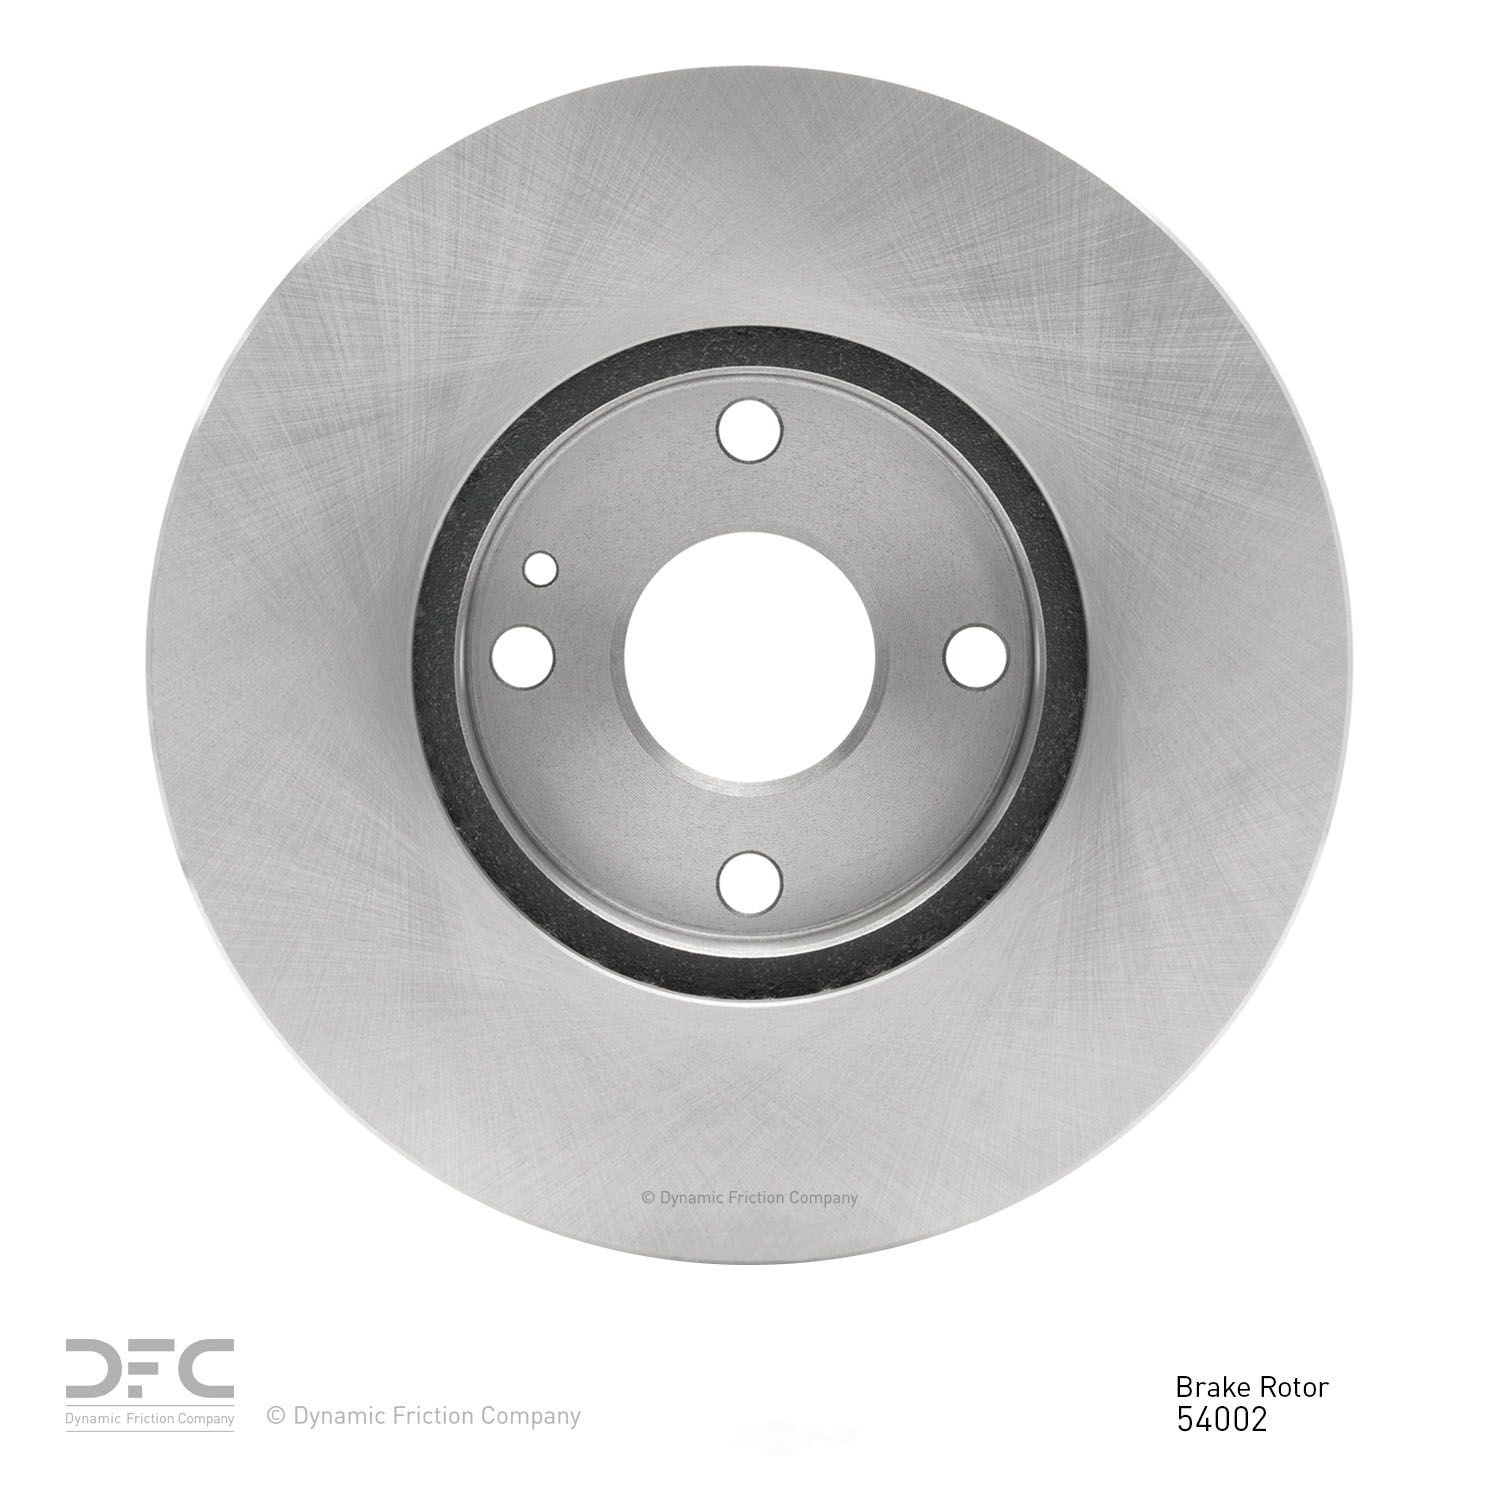 DFC - Premium OE Replacement Rotors - DF1 600-54002